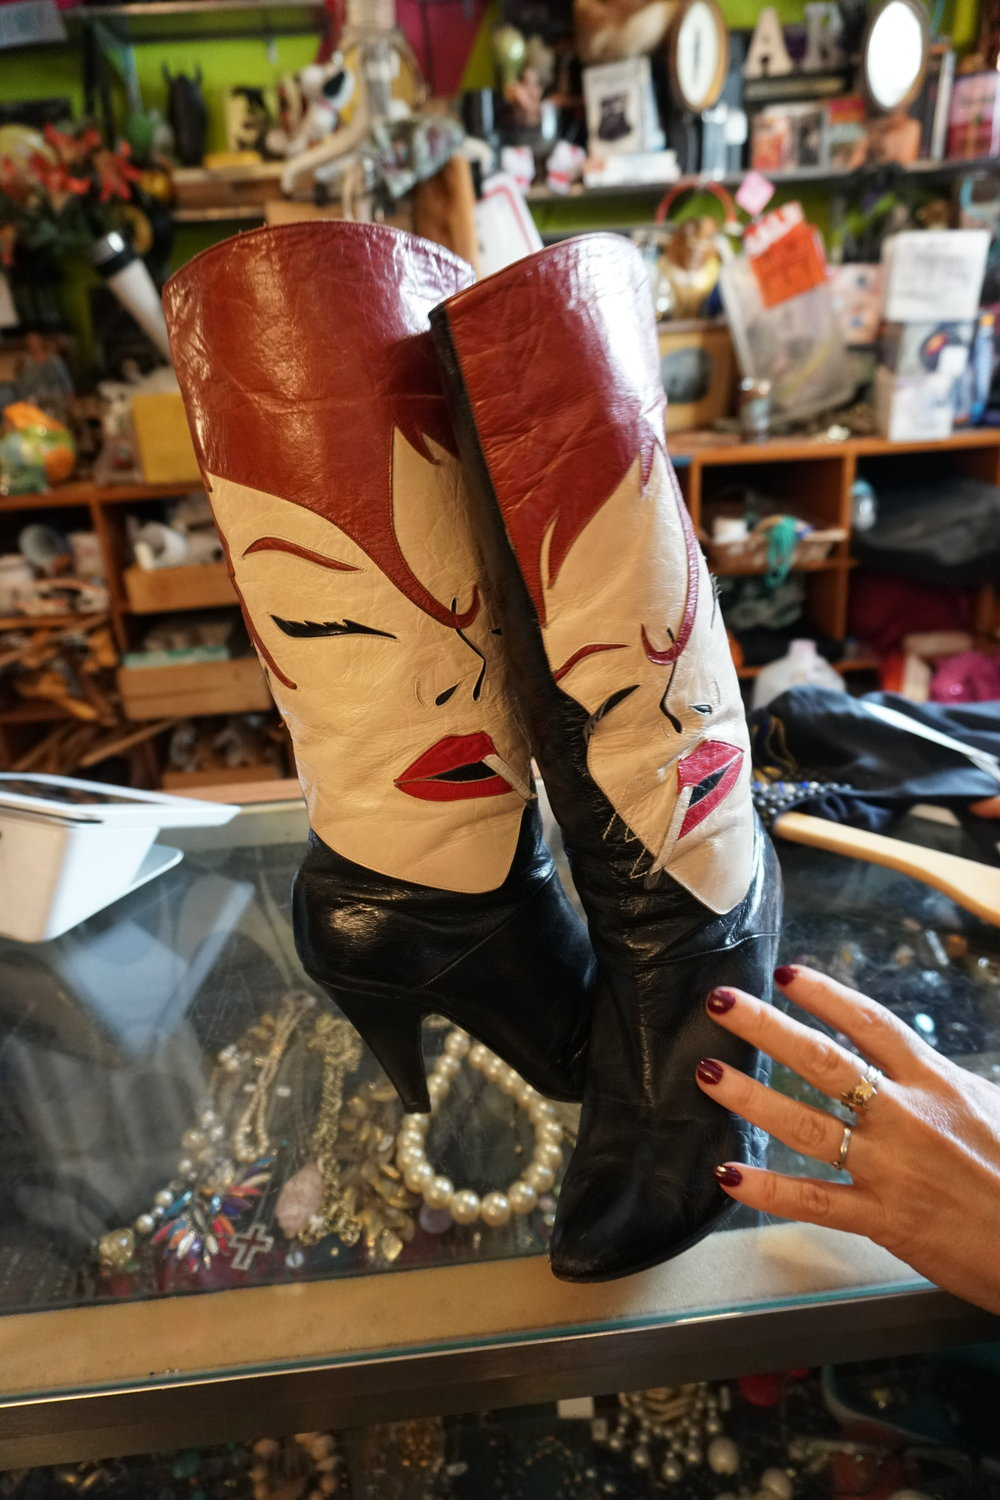 Monk Vintage boots Best Vintage Clothing Stores in Williamsburg, Brooklyn, NYC The Travel Women